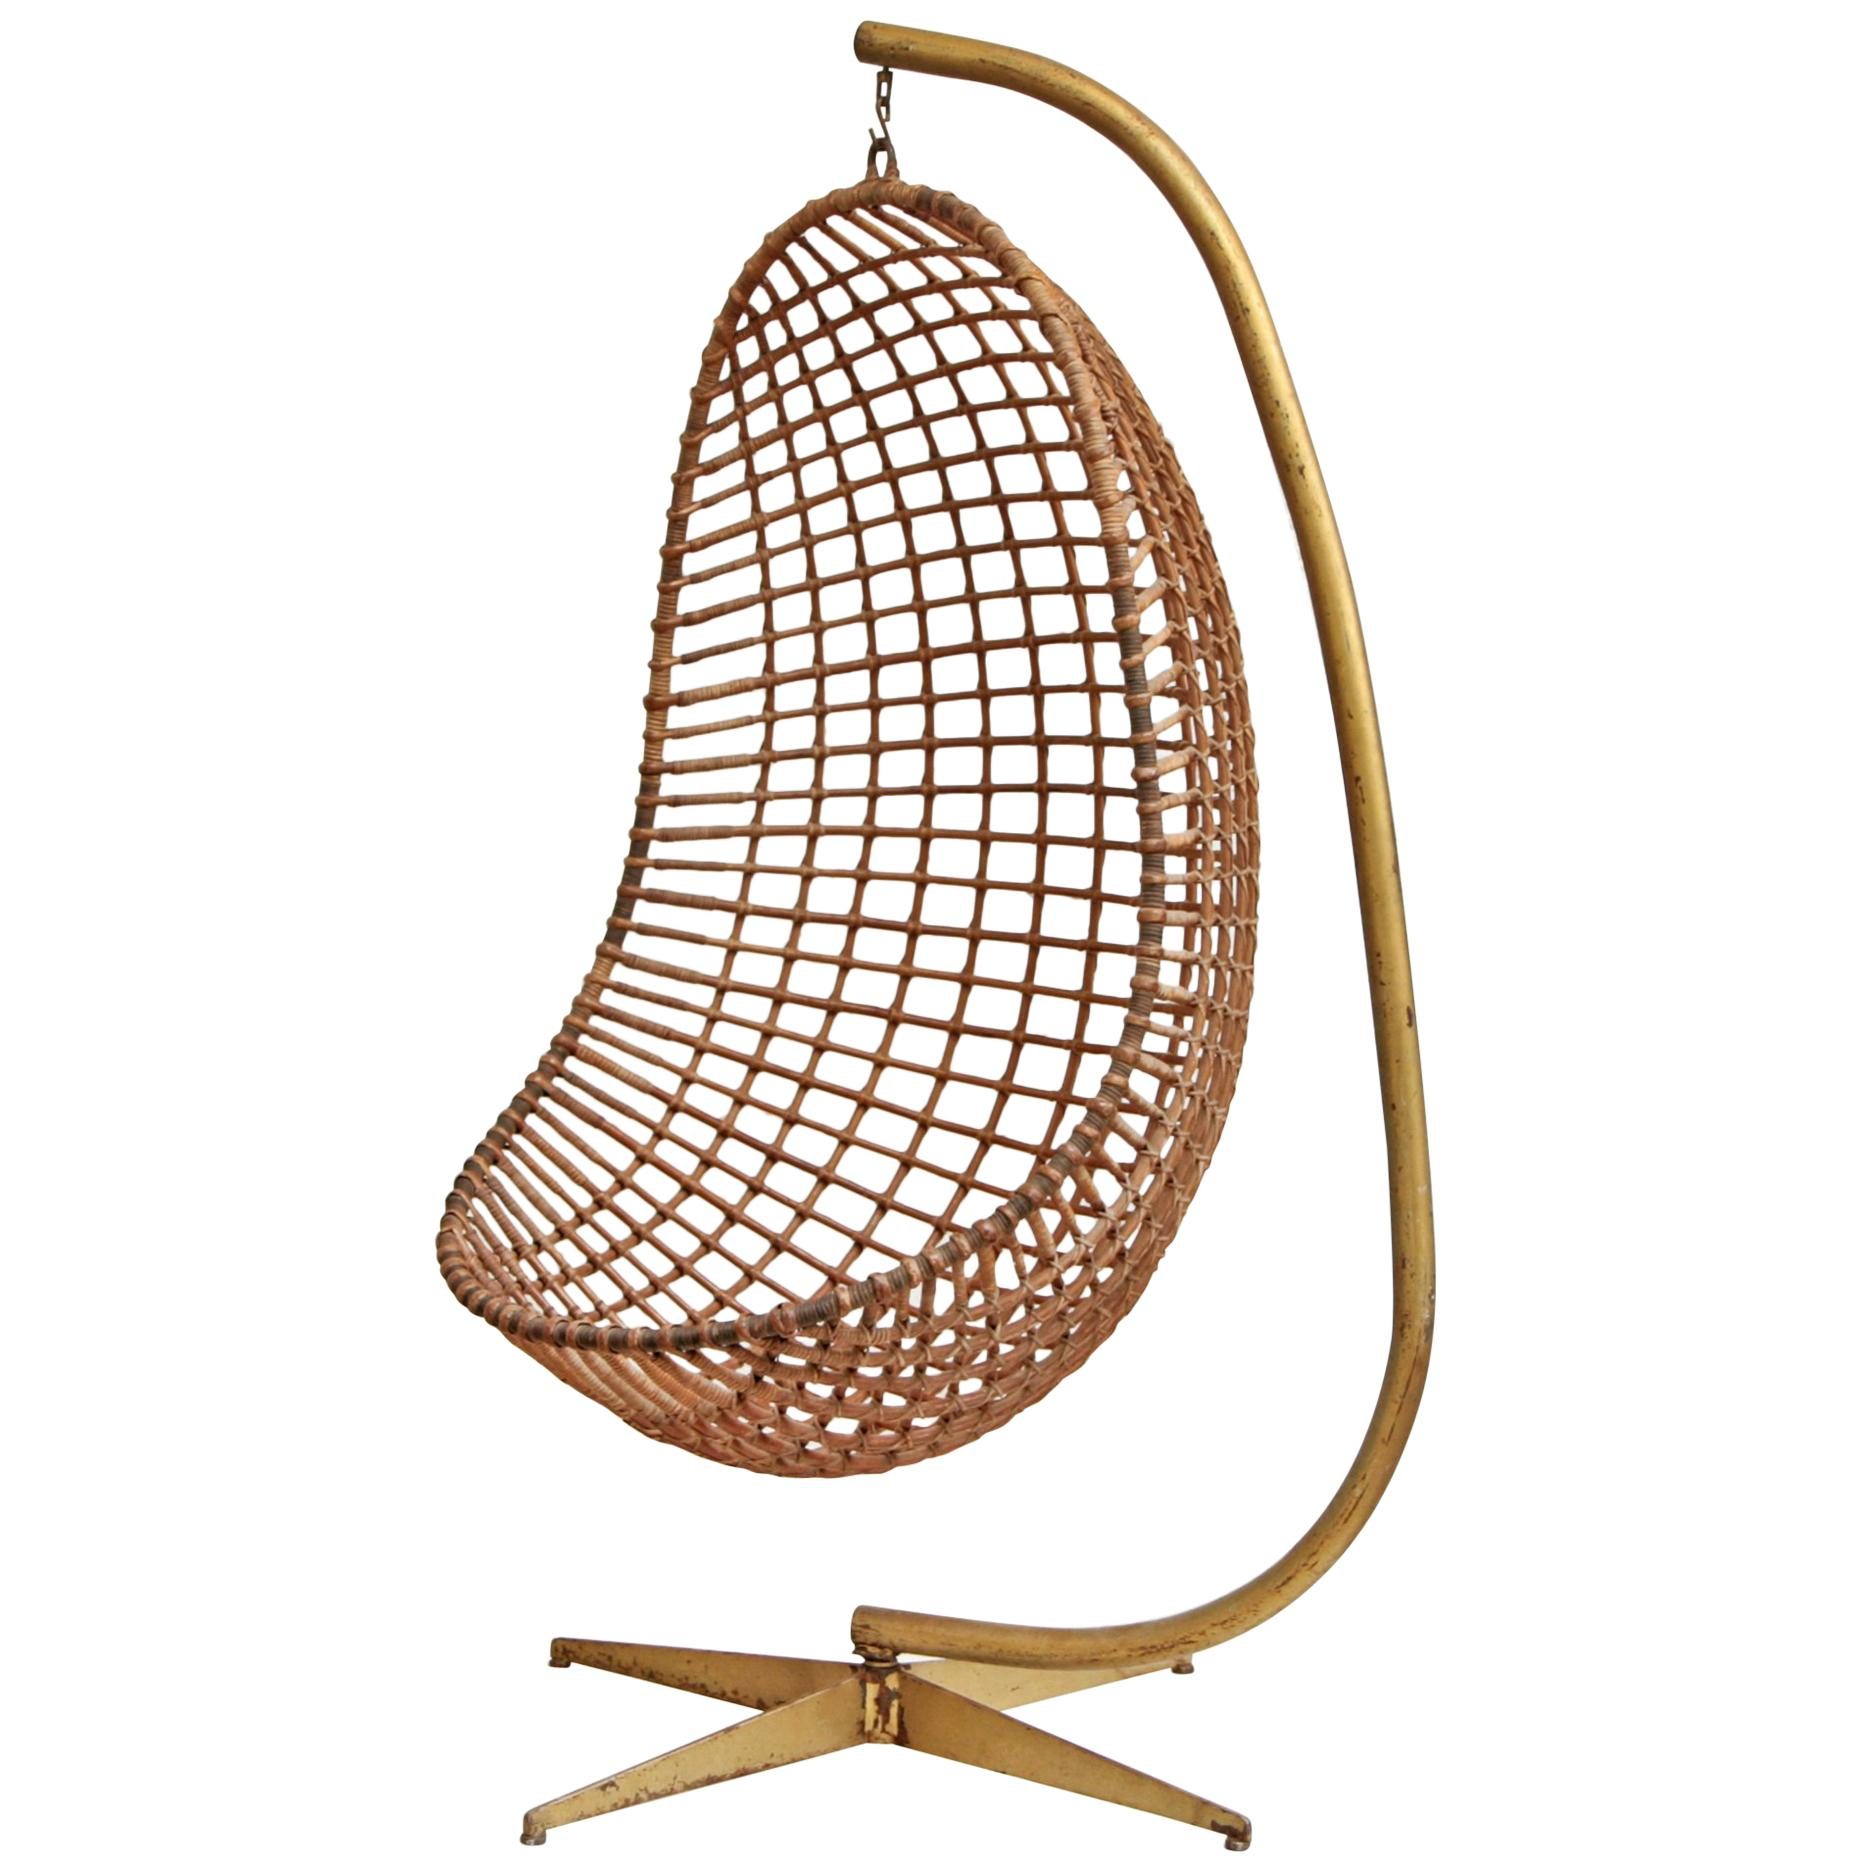 Genial Rohe Noordwolde Rattan Egg Chair And Stand For Sale